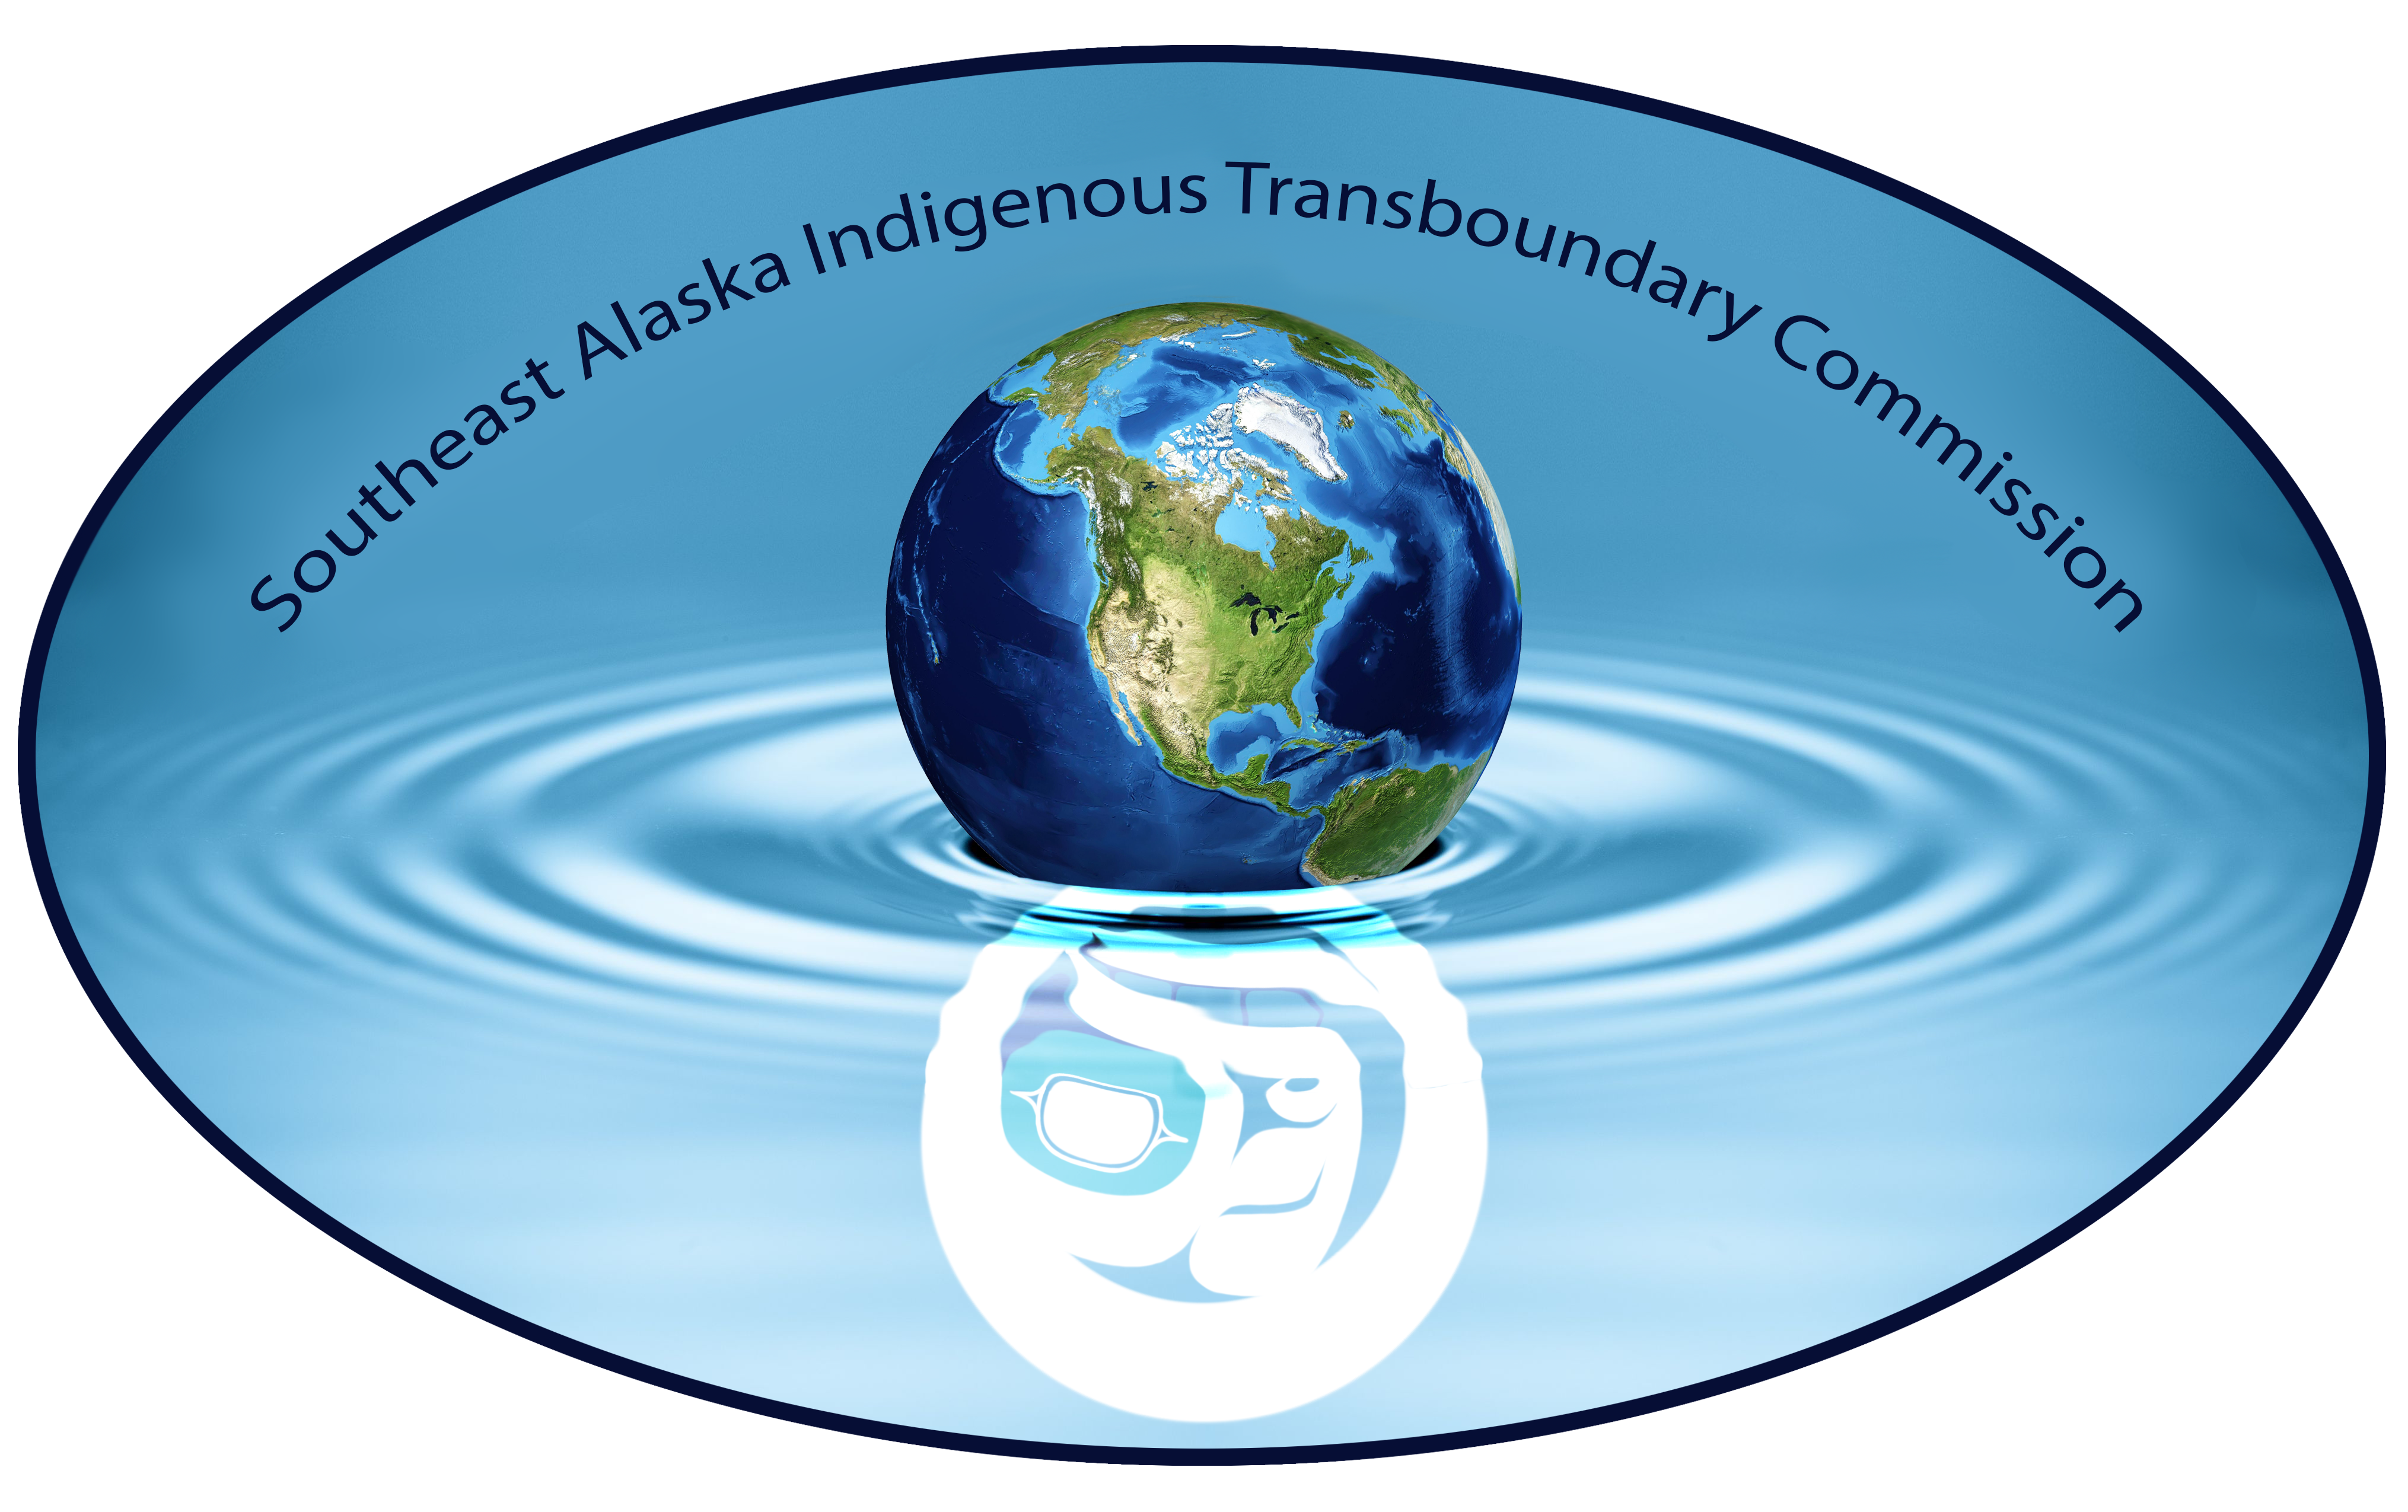 Southeast Alaska Indigenous Transboundary Commission